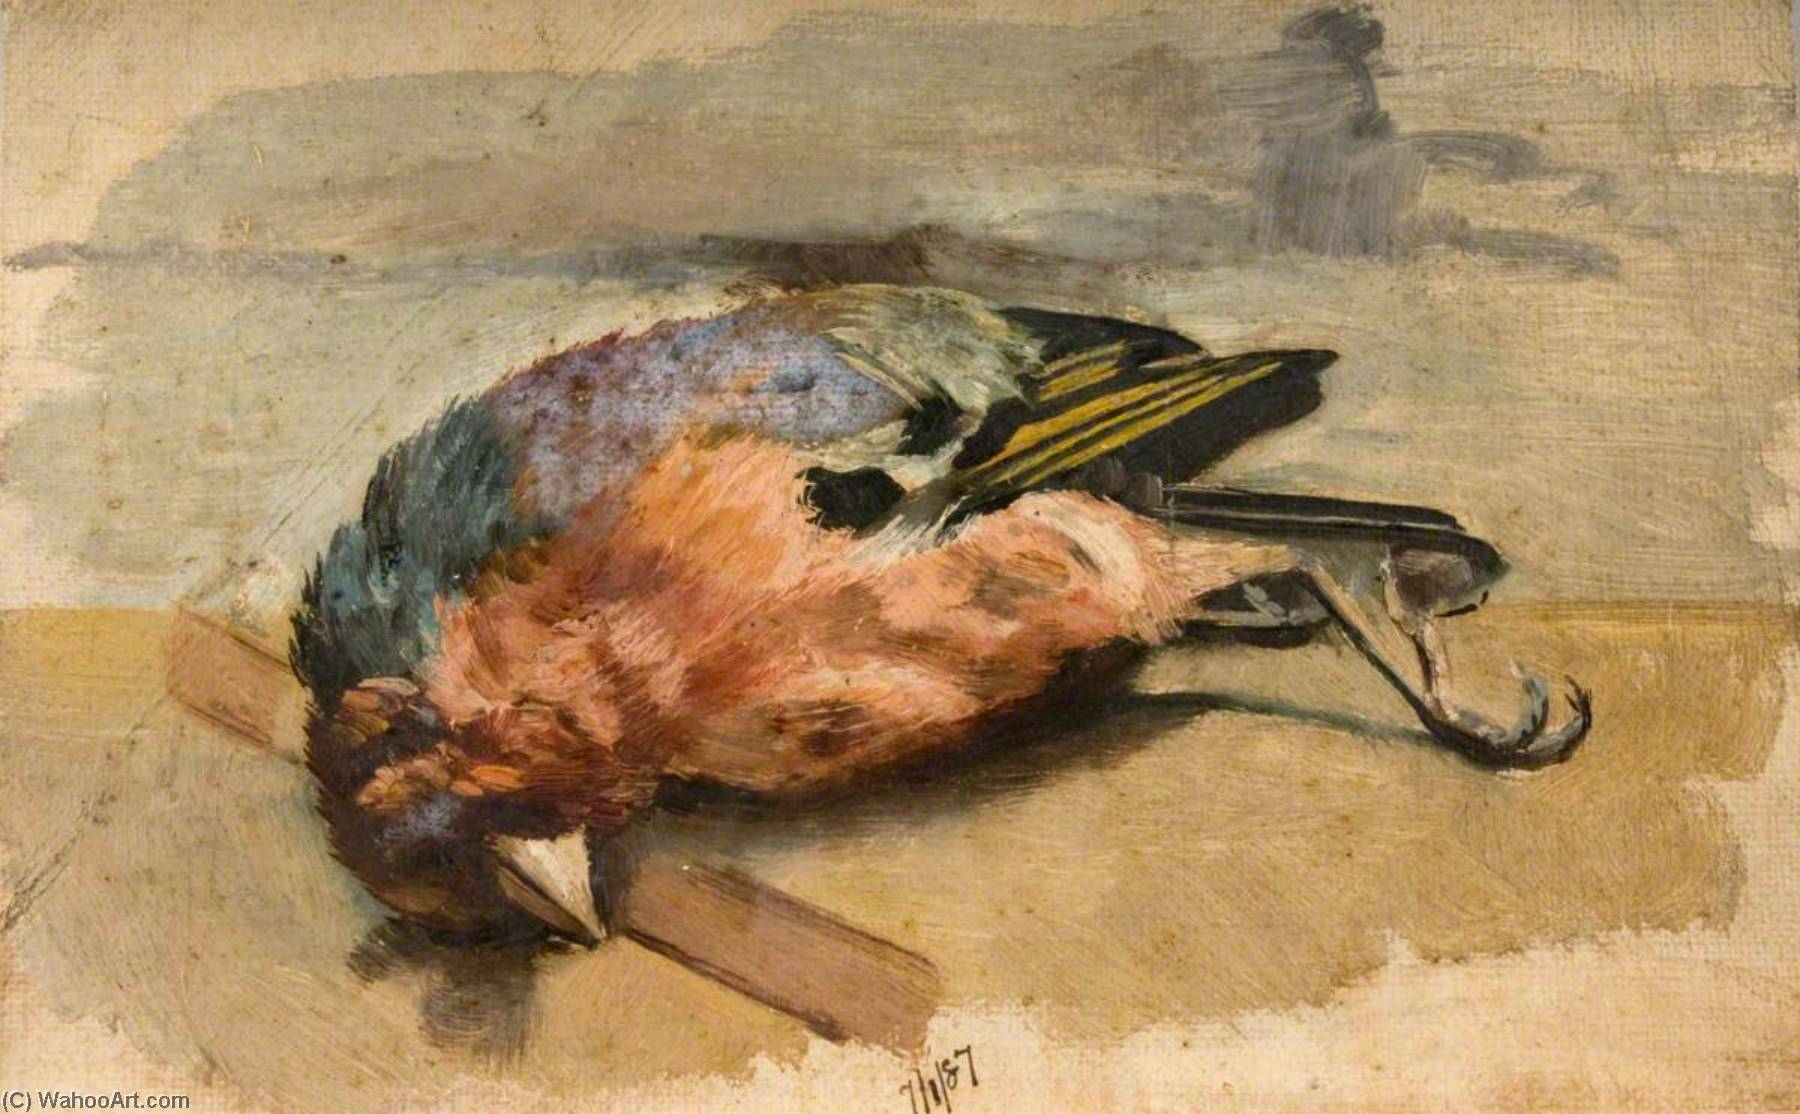 Study of a Dead Chaffinch, 1887 by George Cartlidge | Art Reproduction | WahooArt.com